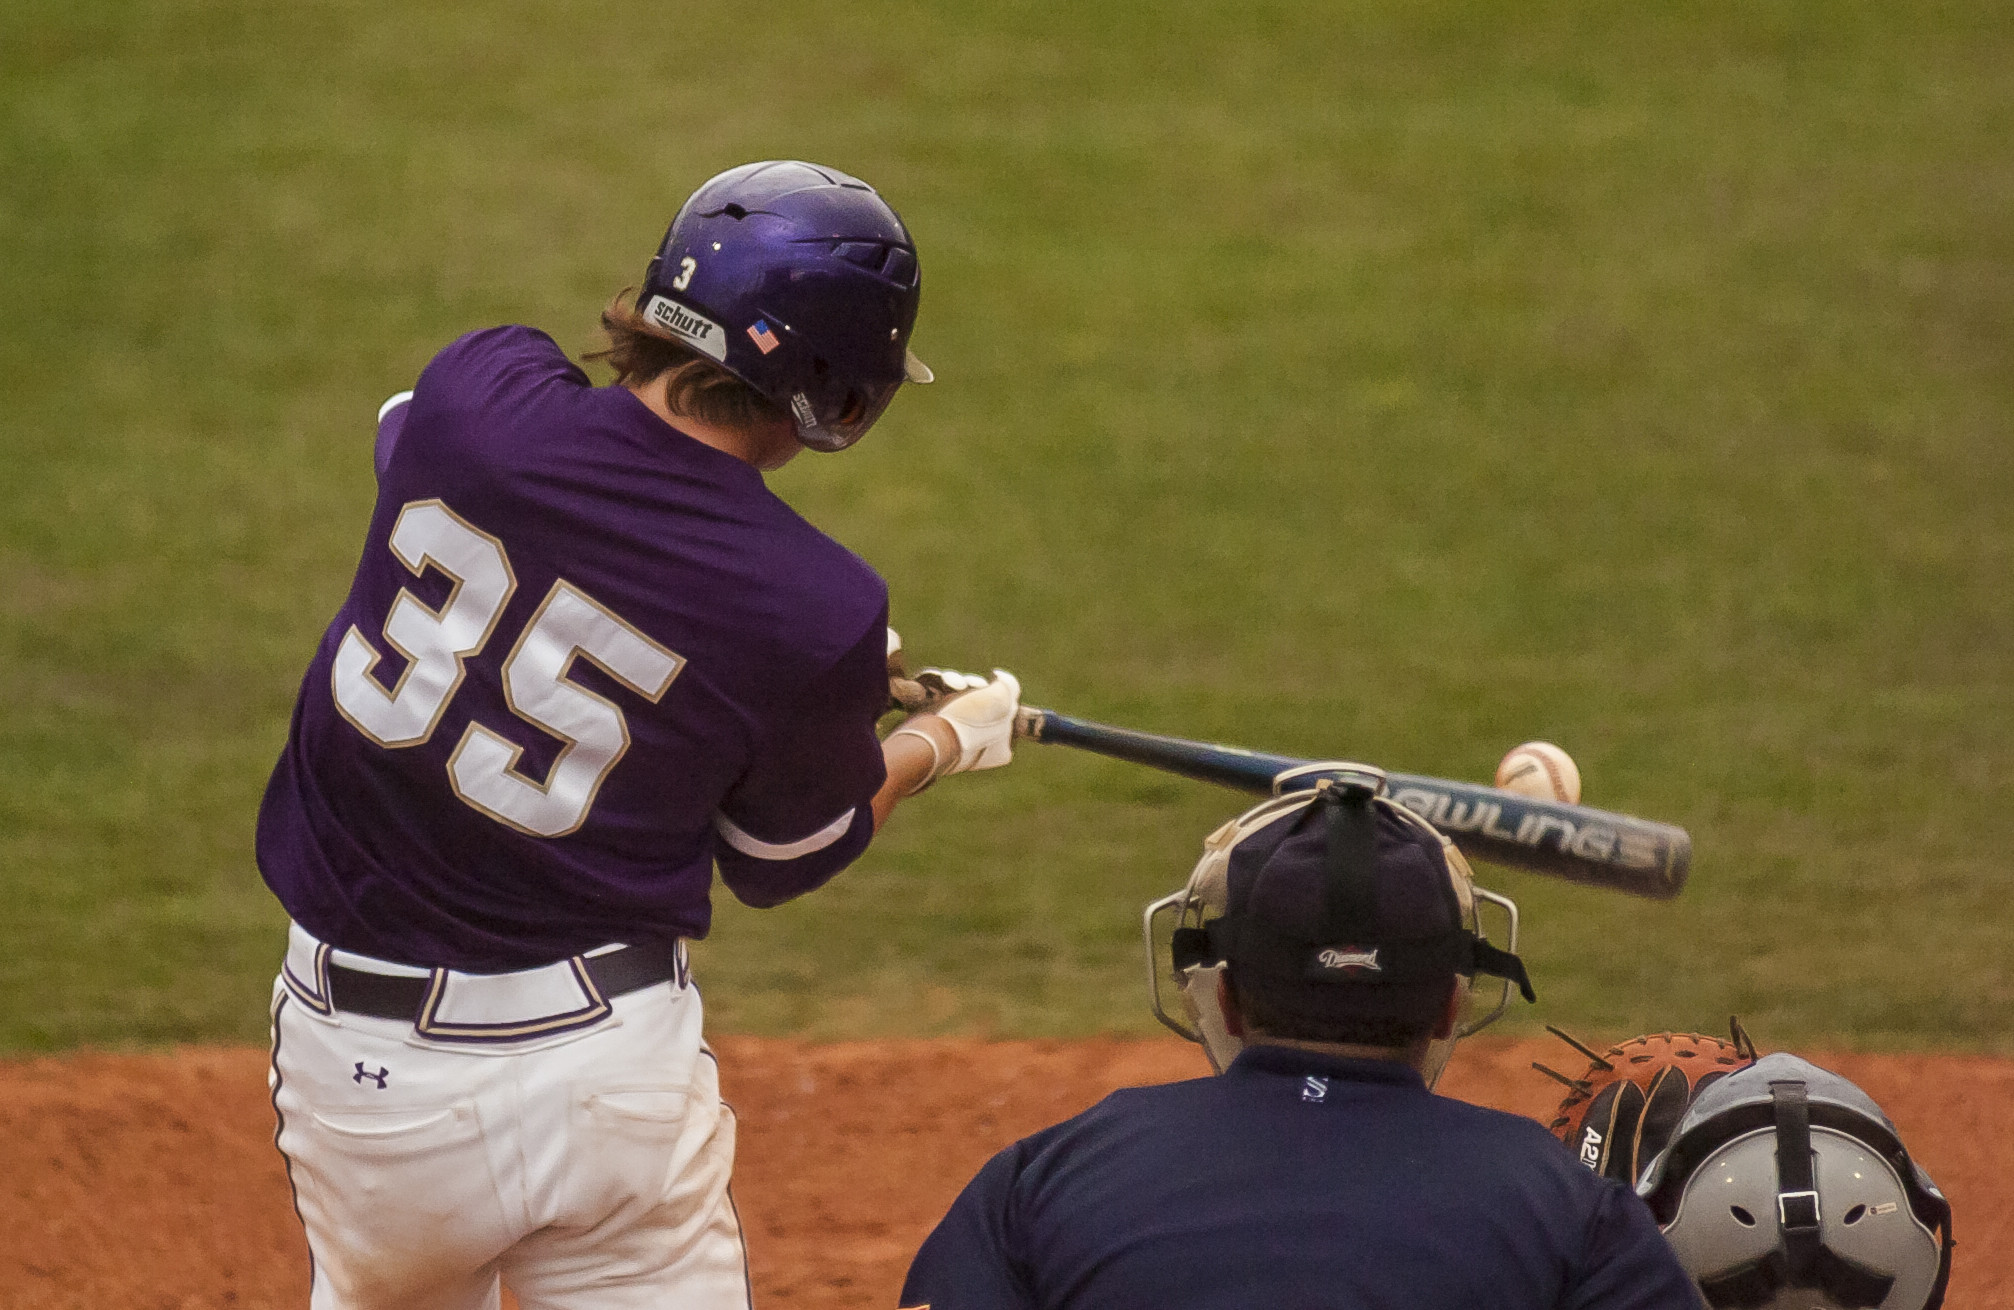 Cartersville sophomore Josh Davis put together a solid Class 4A state semifinal series. He drove in the go-ahead run in Game 1, hit a game-tying homer in Game 2 and had a key sacrifice bunt to start a late rally in the deciding win.